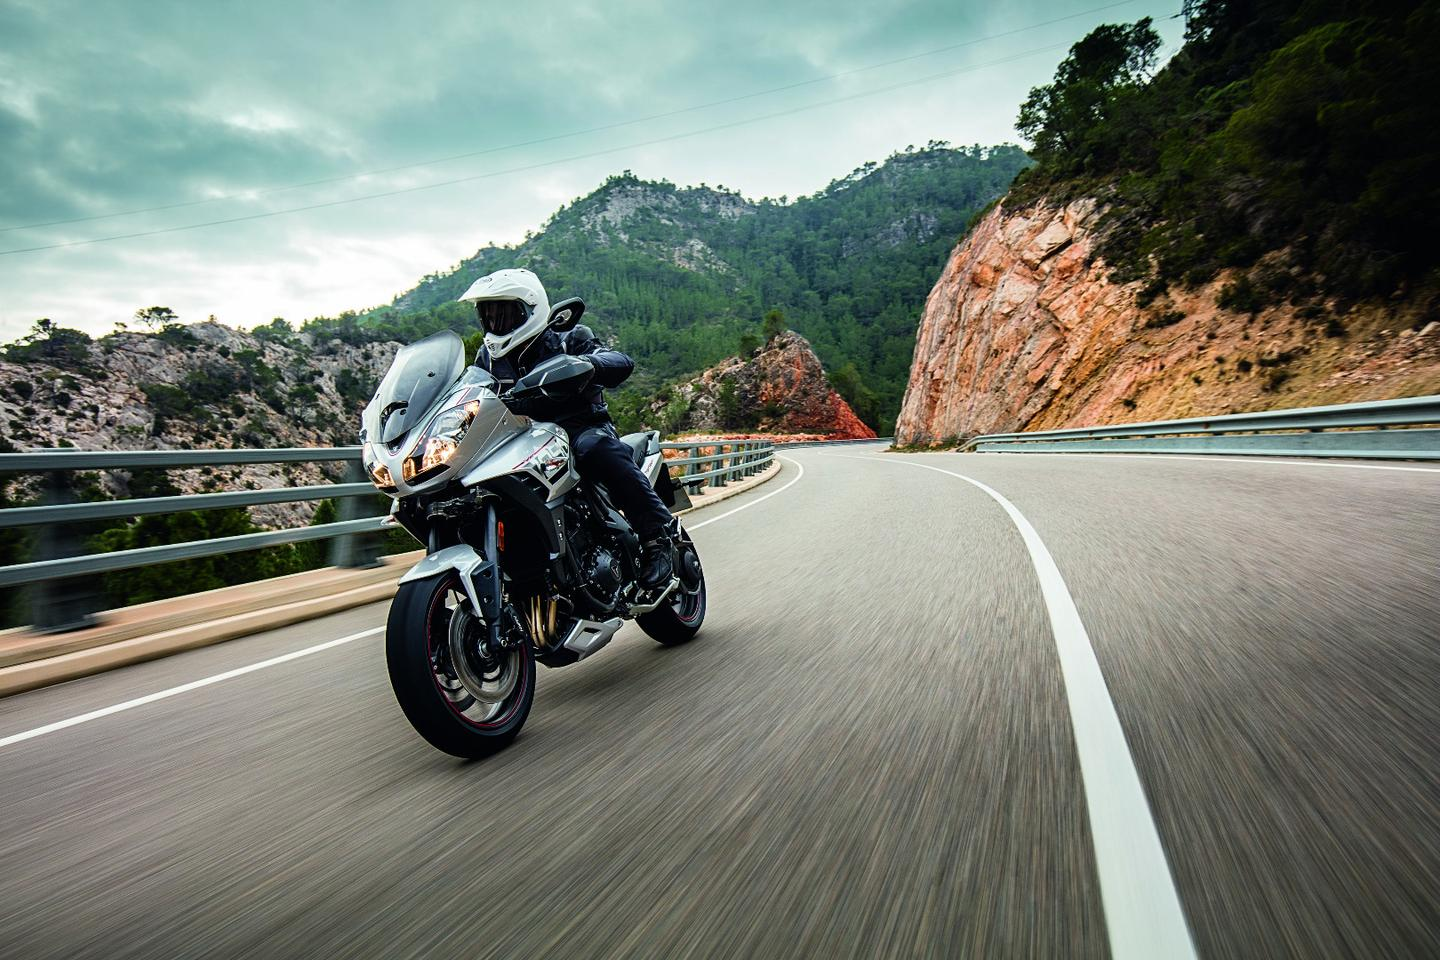 The 2016 Triumph Tiger Sport in action